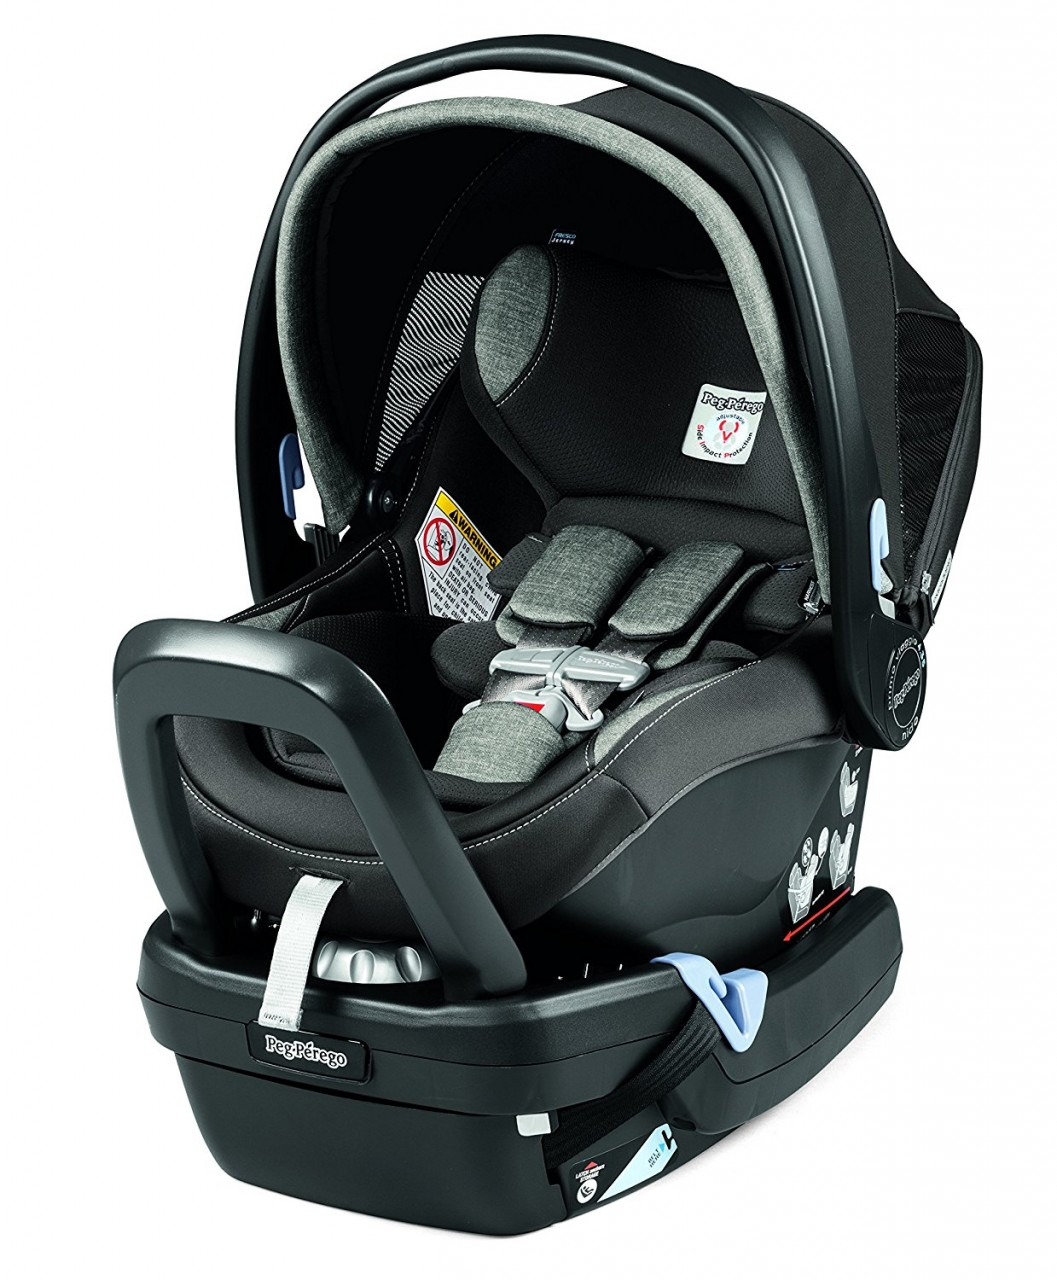 How To Install Peg Perego Car Seat On Stroller